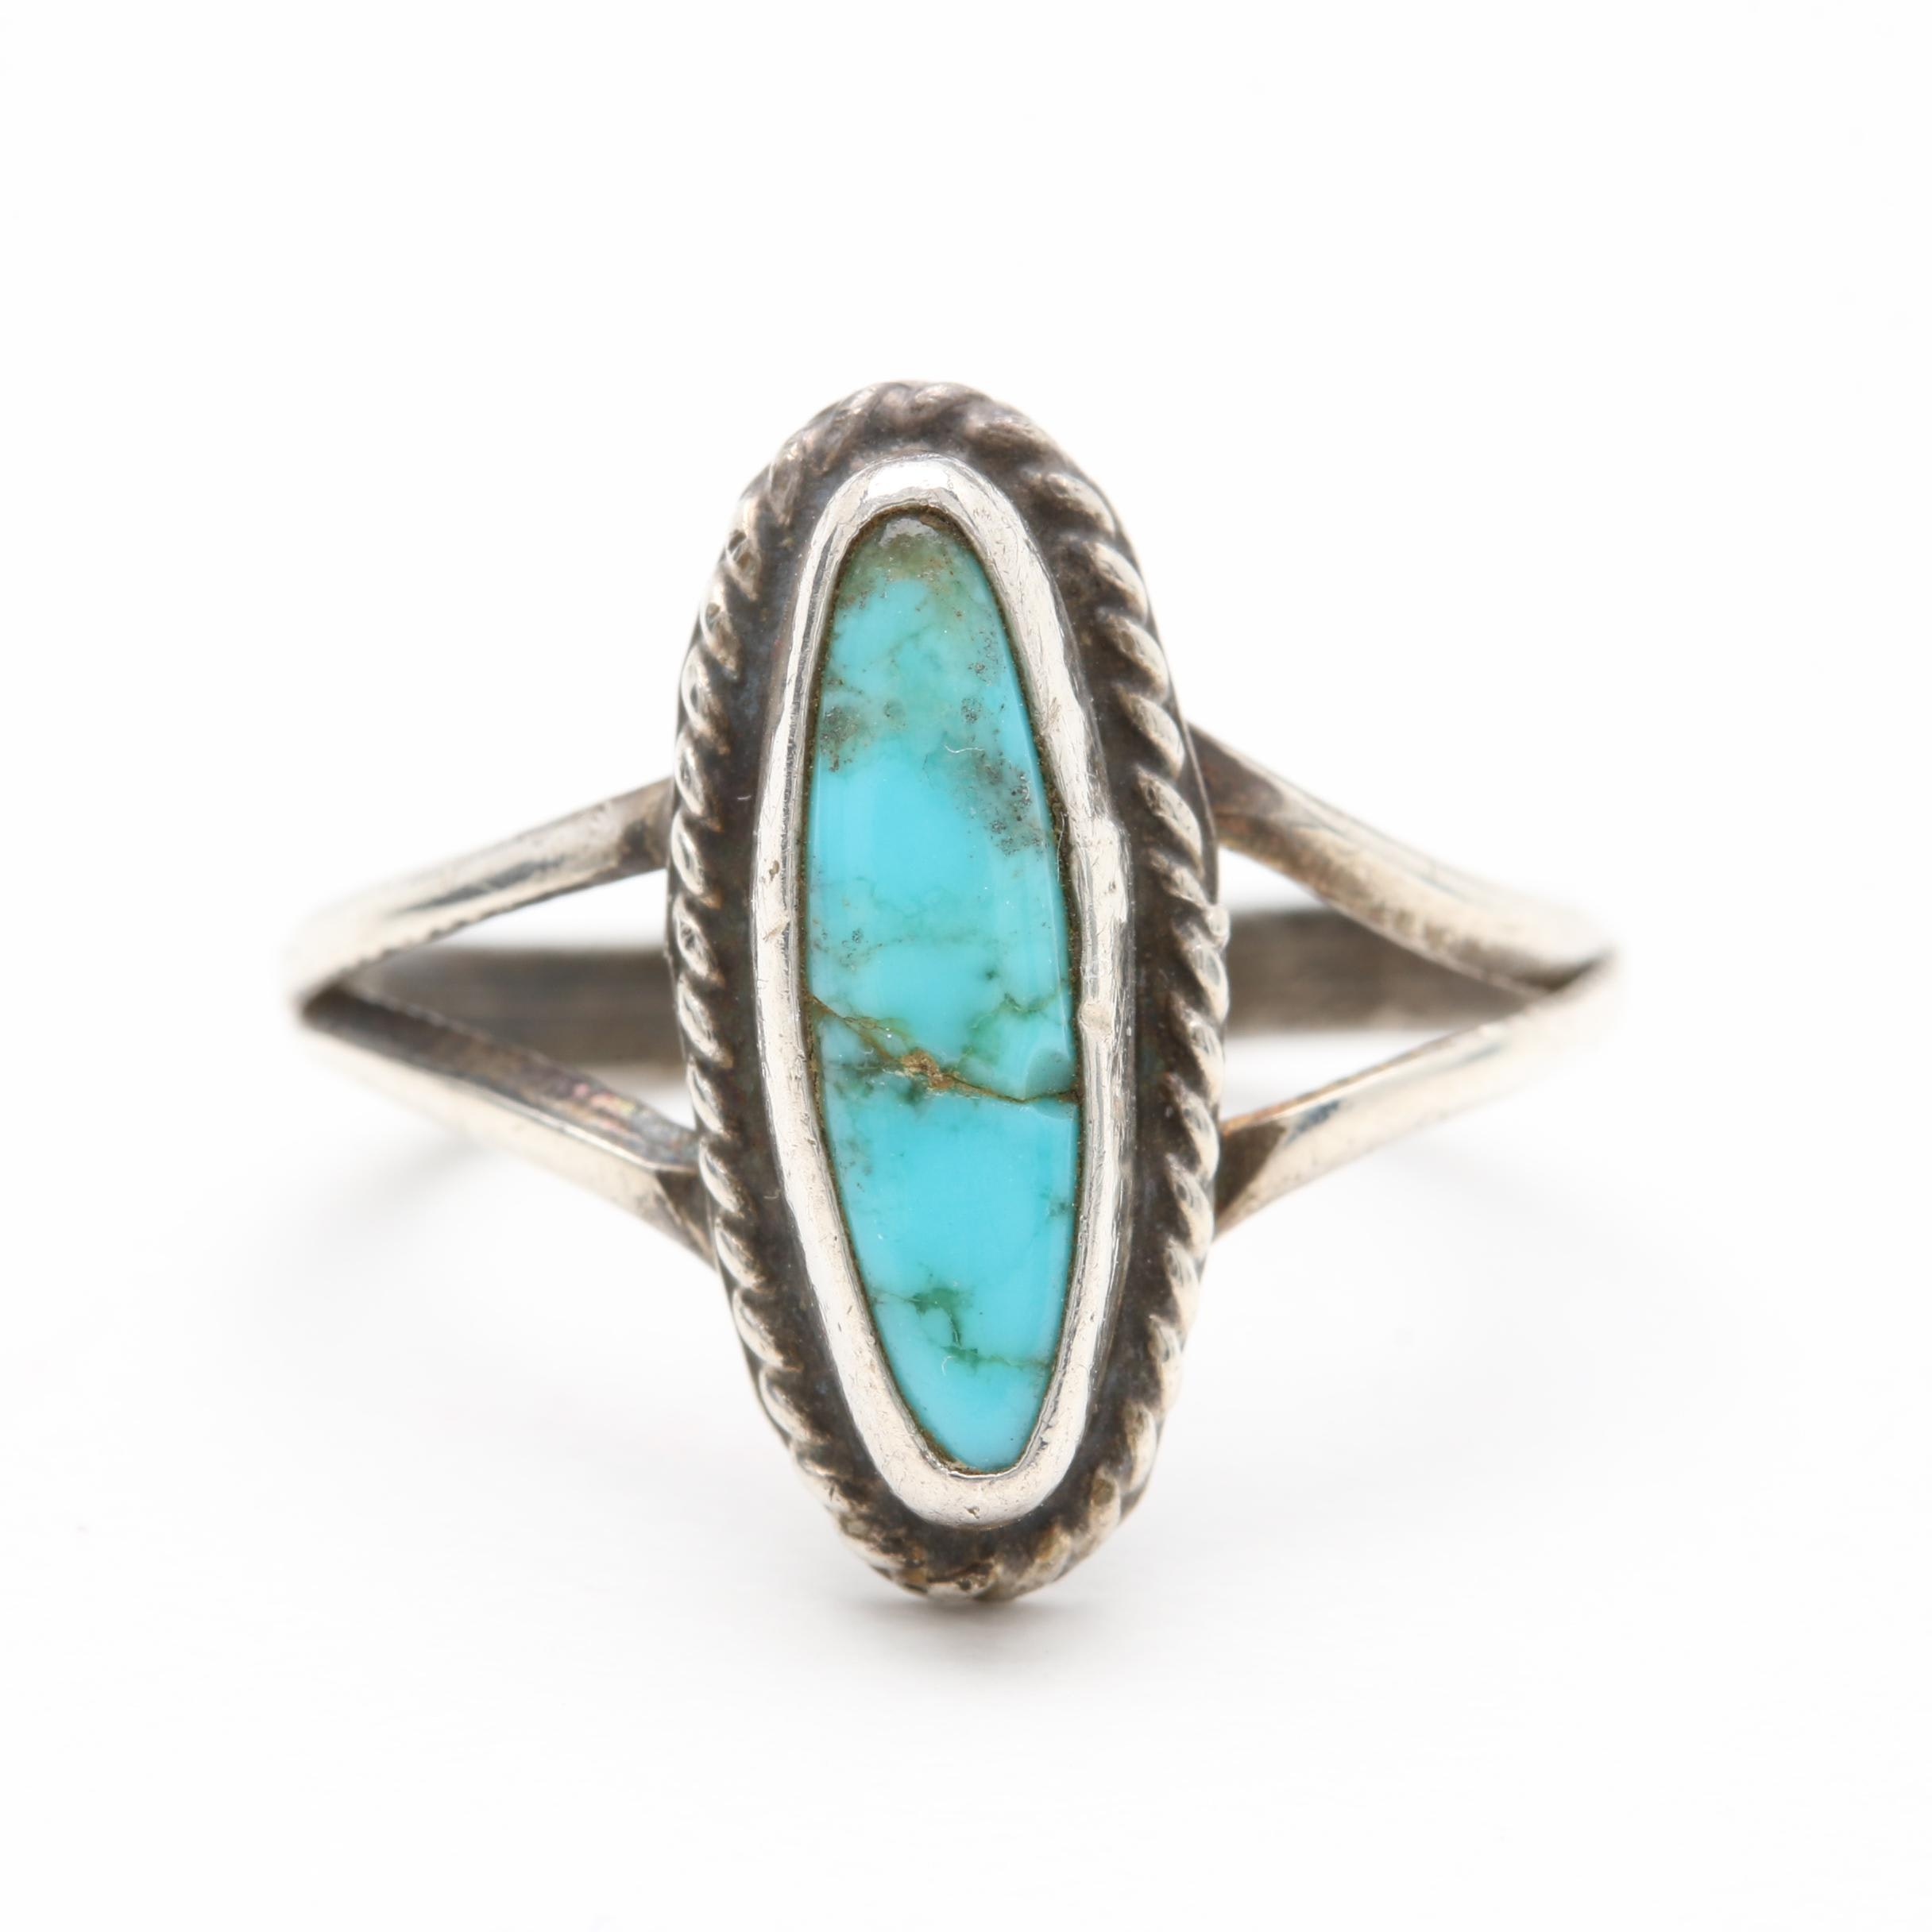 Vintage Southwest Style Sterling Silver Turquoise Ring